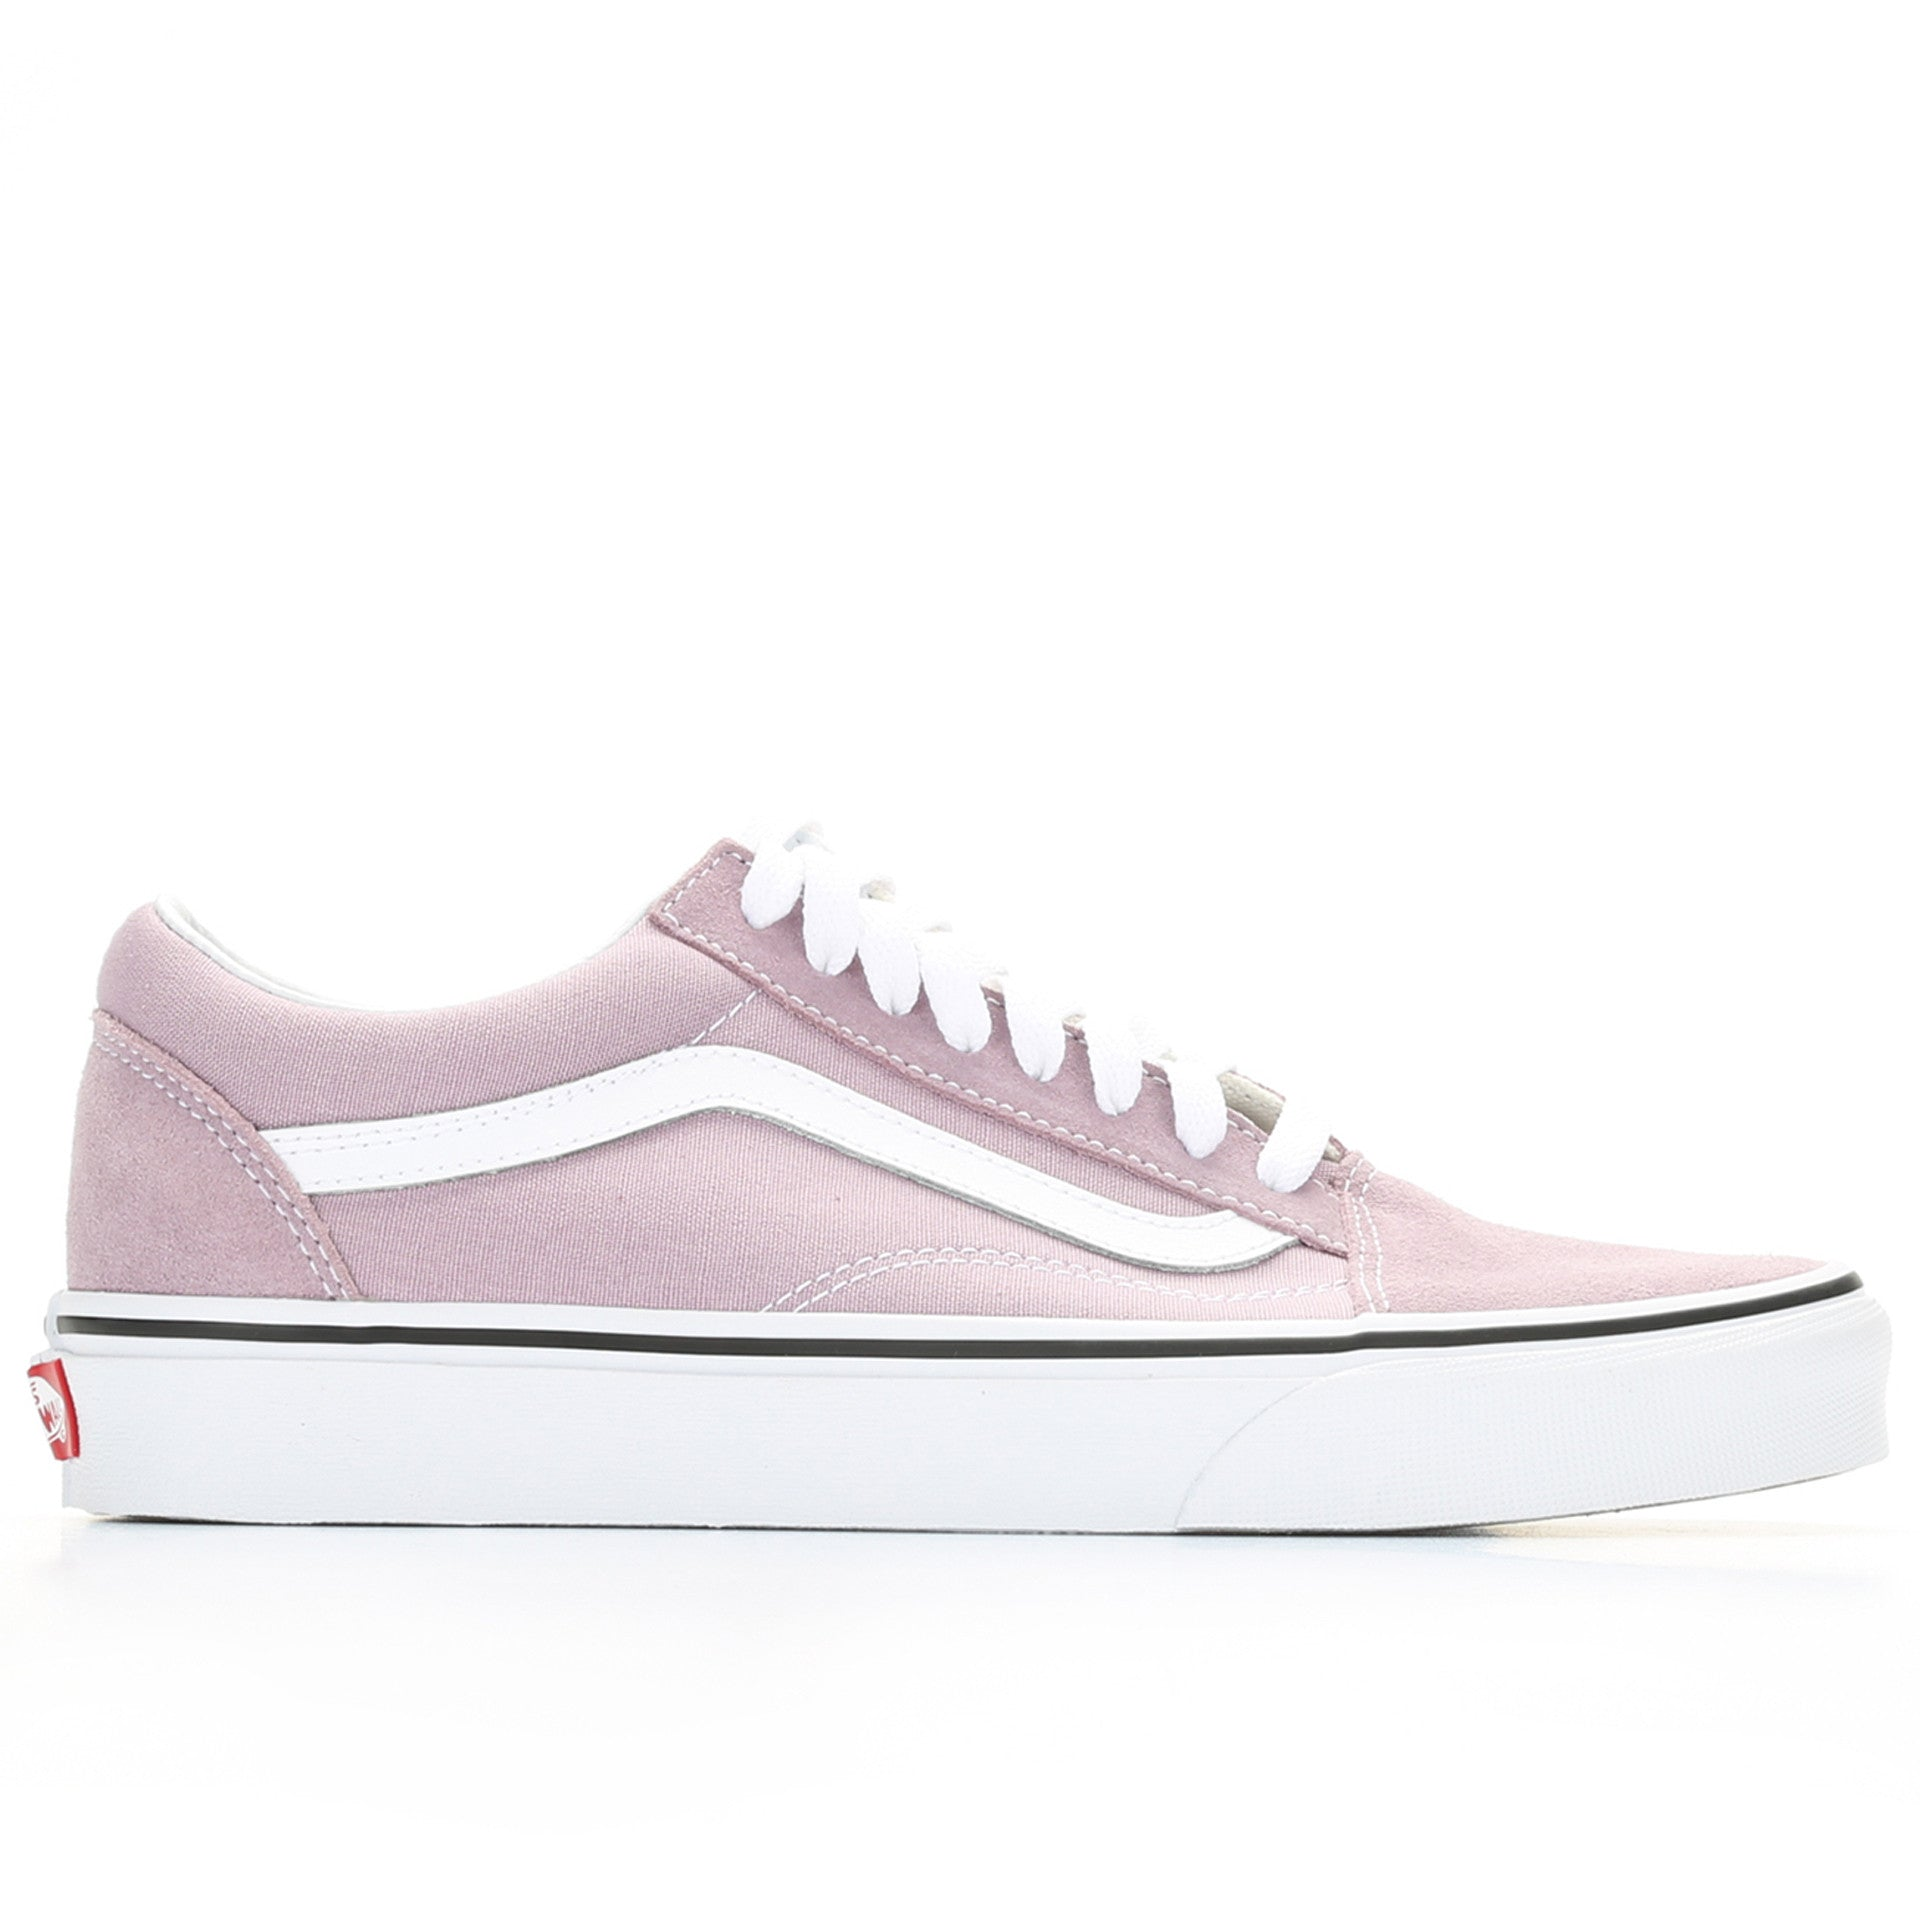 5efa3b7c0a35 Vans Classic Old Skool - Sea Fog - New Star